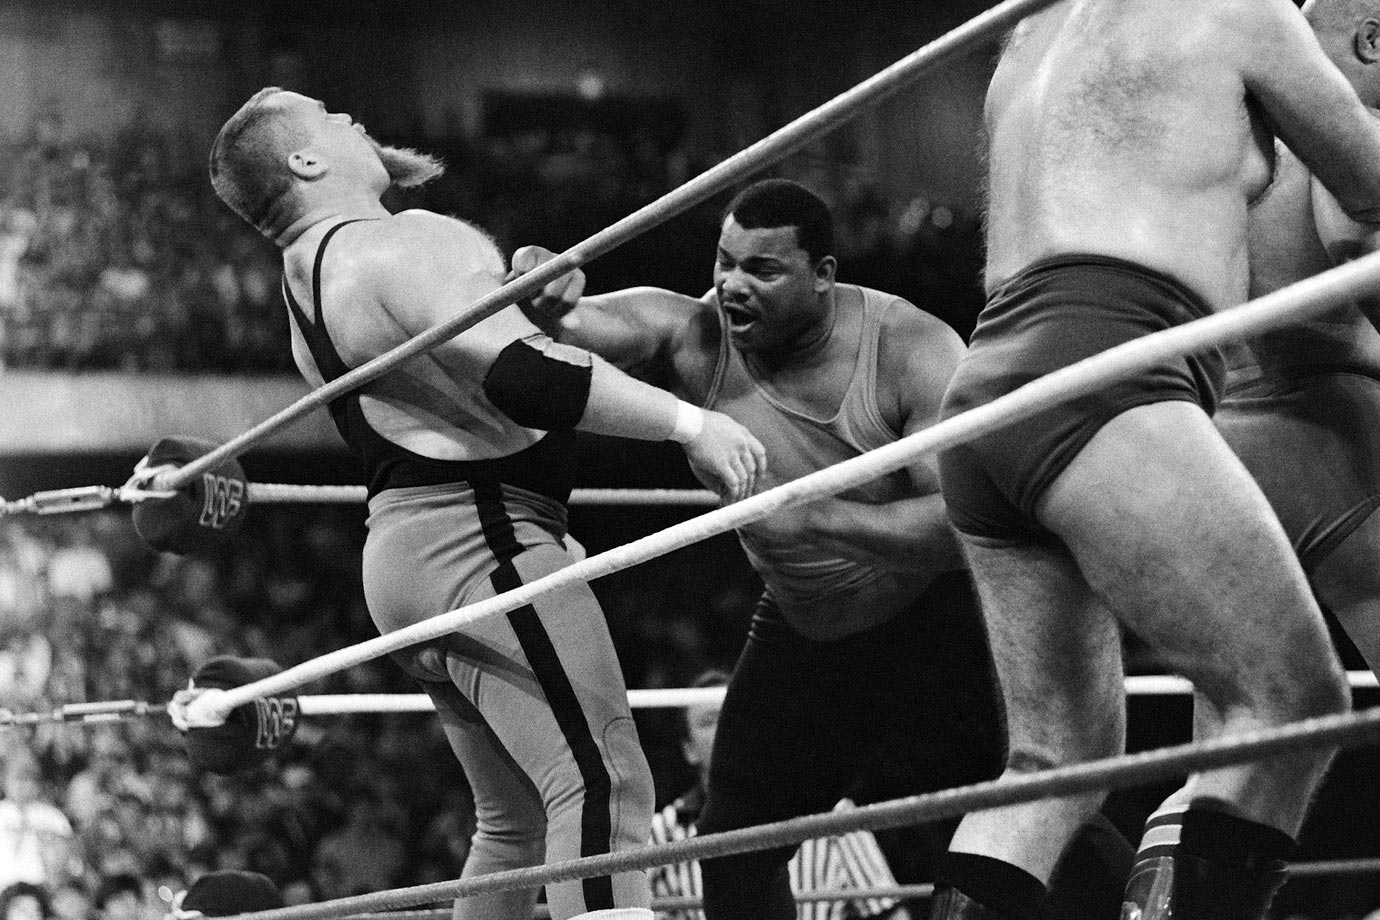 April 7, 1986 — Wrestlemania 2